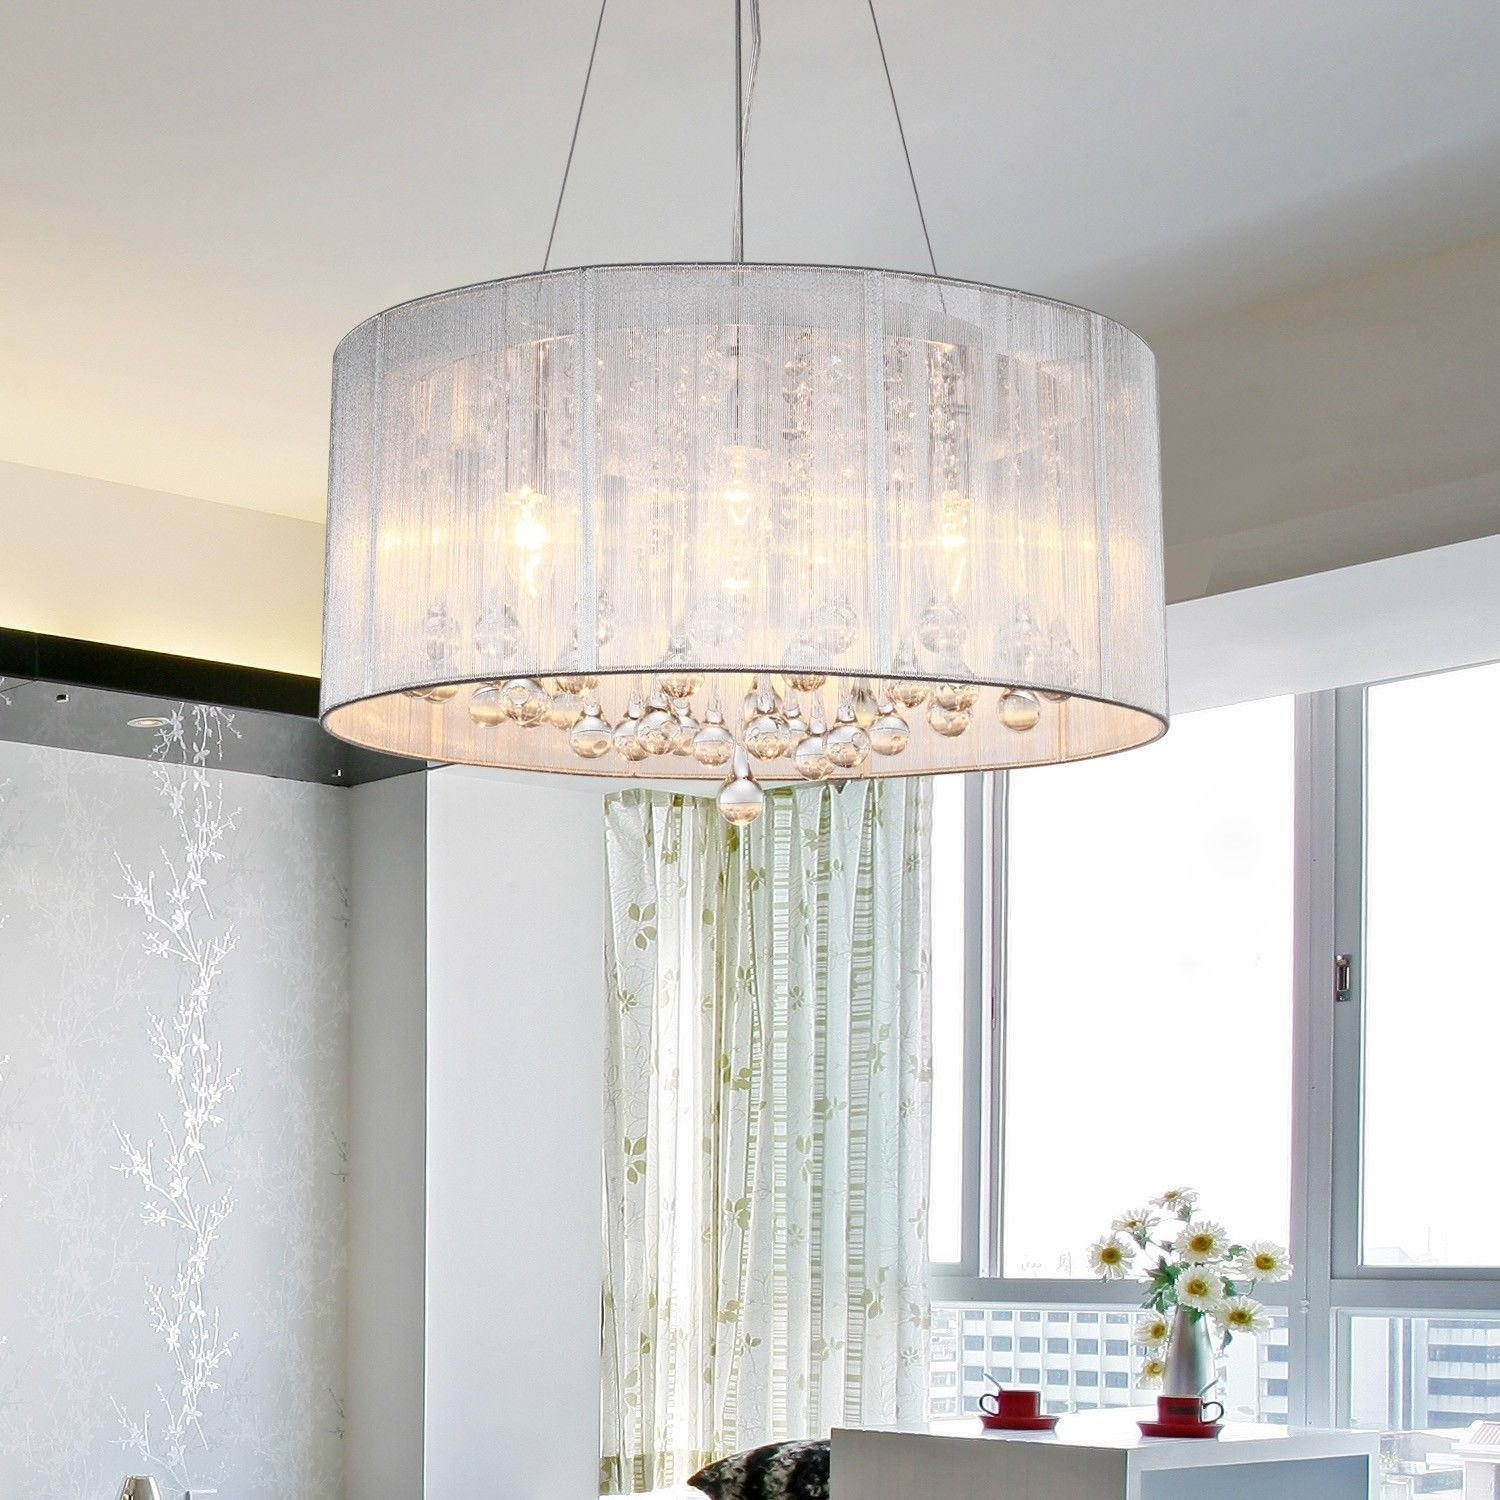 Very Awesome Lamp Shade Chandelier Best Home Decor Inspirations Intended For Chandelier Light Shades (View 3 of 25)